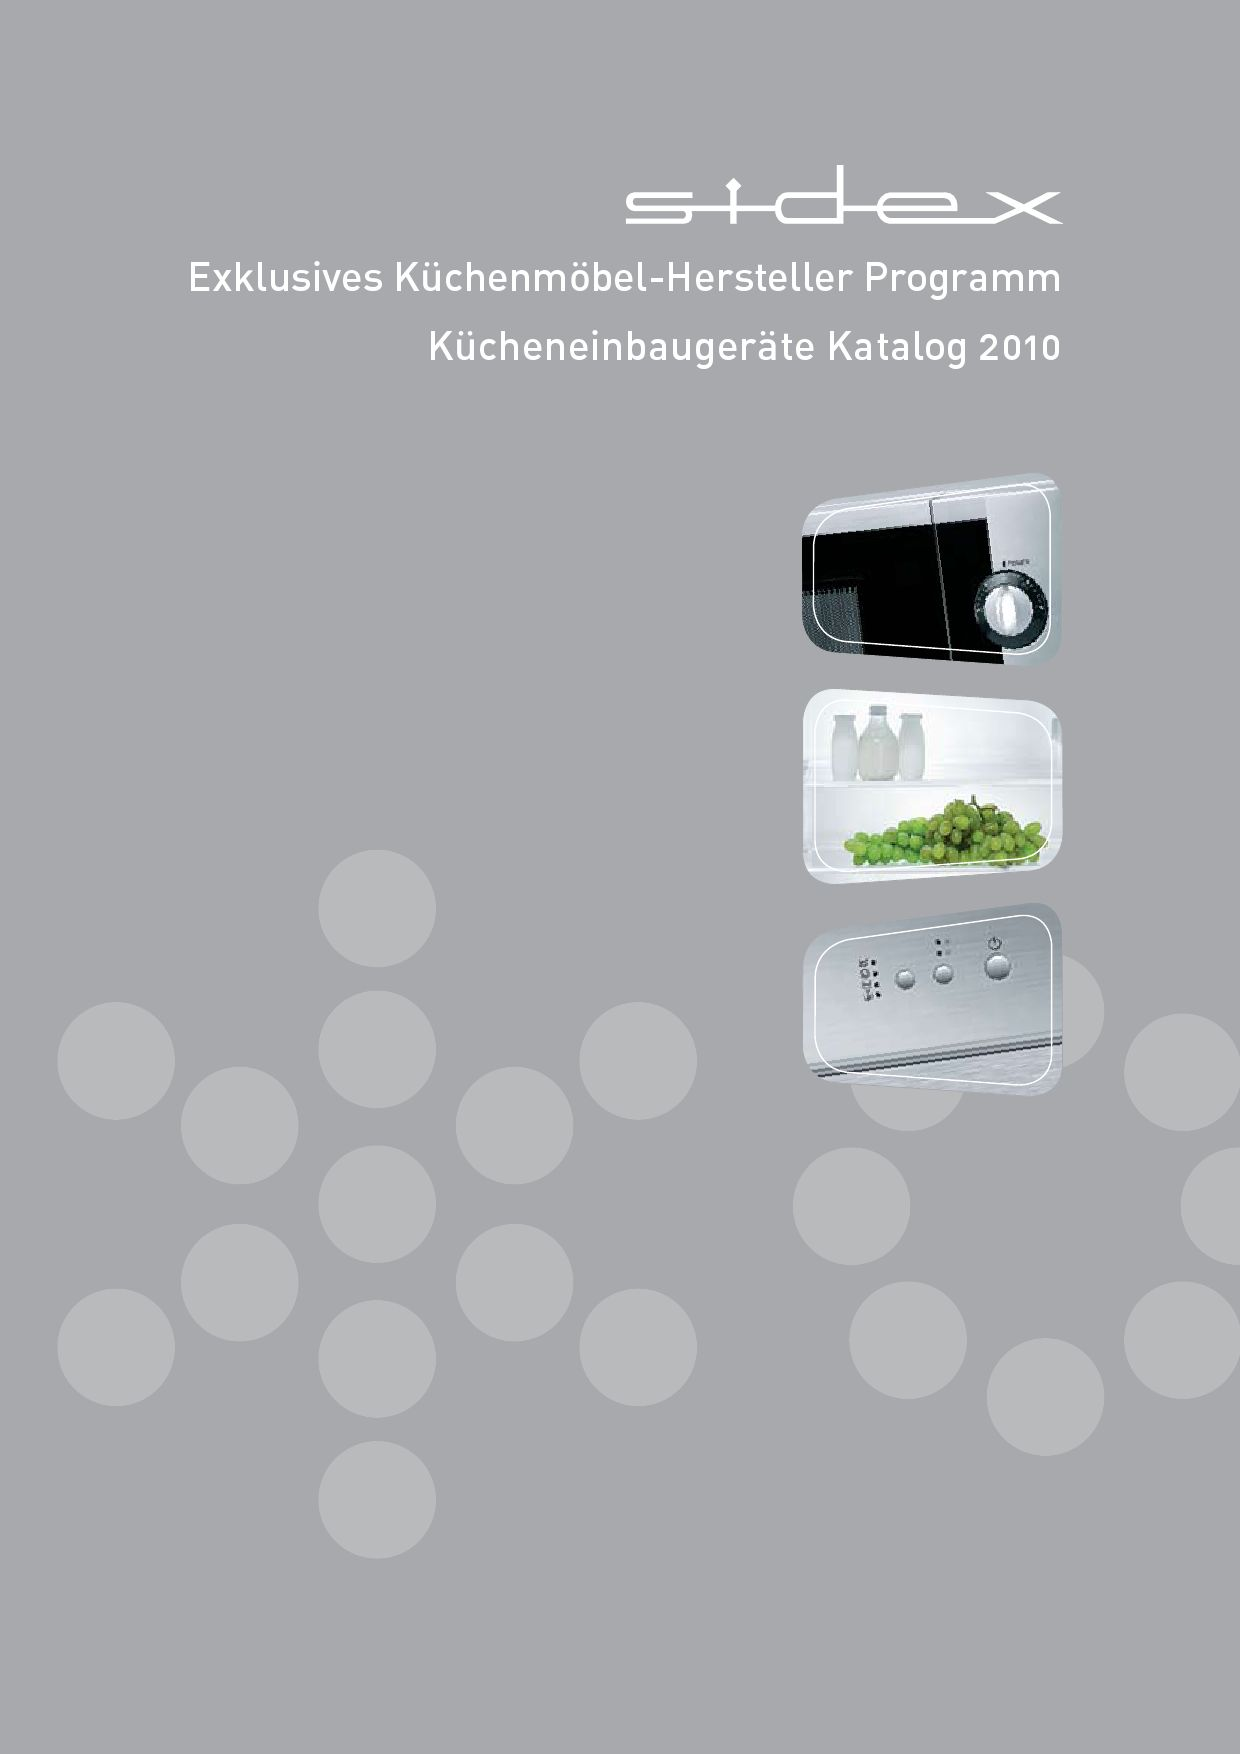 Sidex catalogue Germany by Gorenje d.d. - issuu